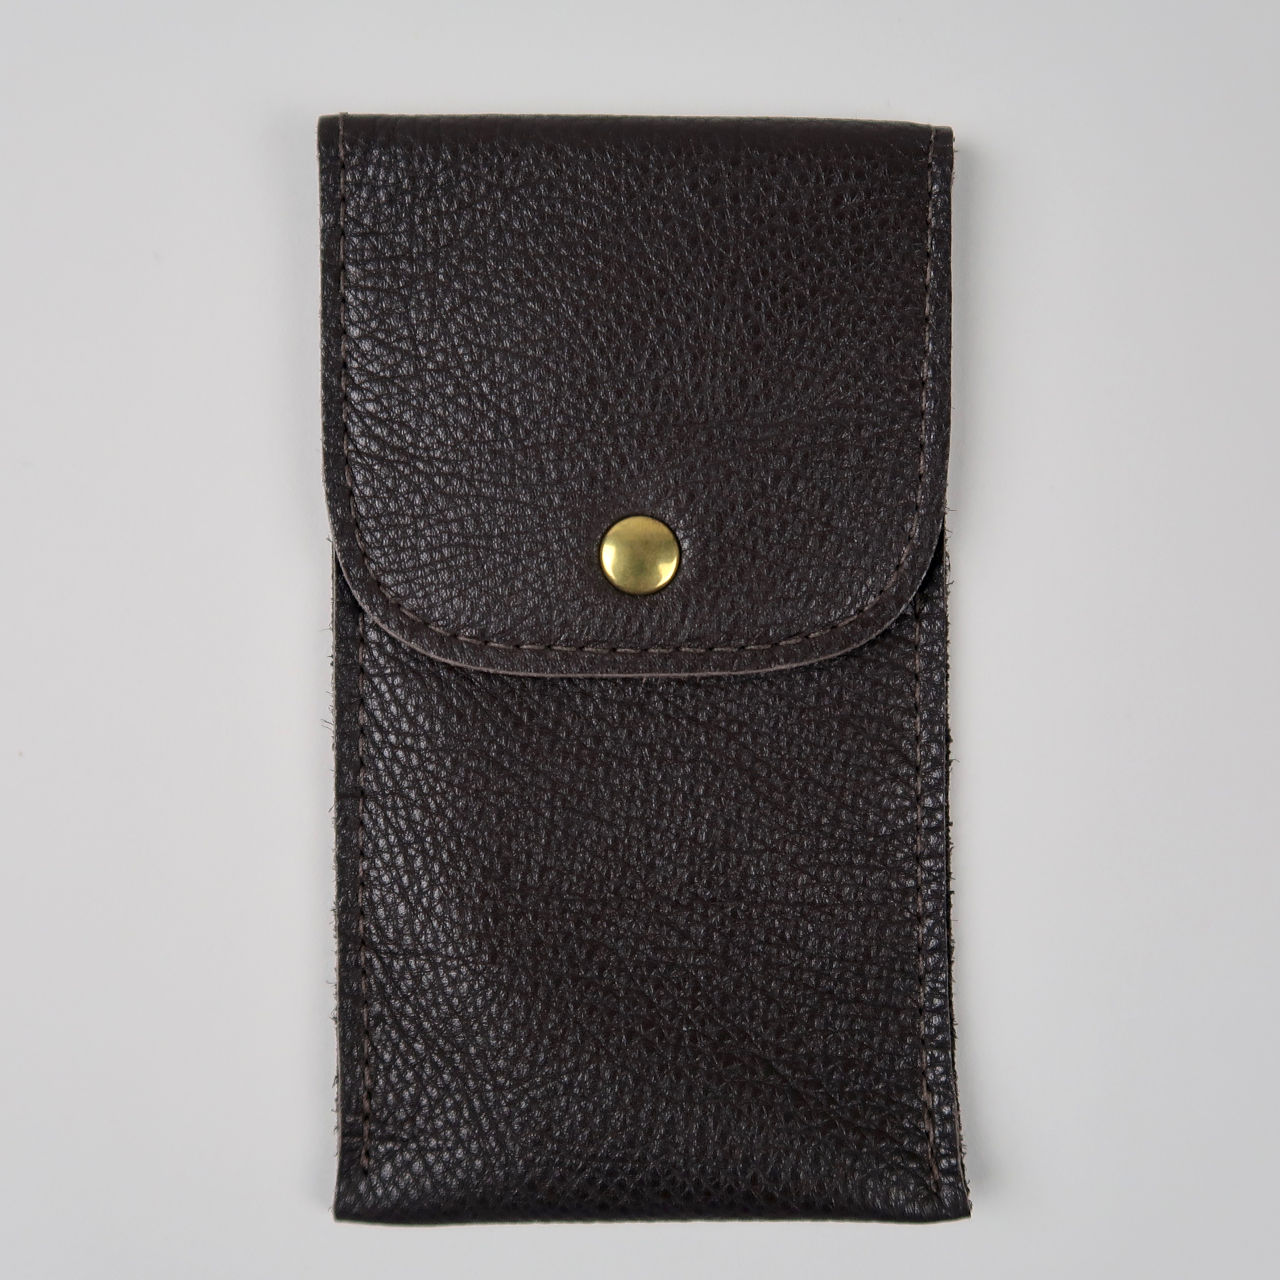 Brown leather wristwatch pouch